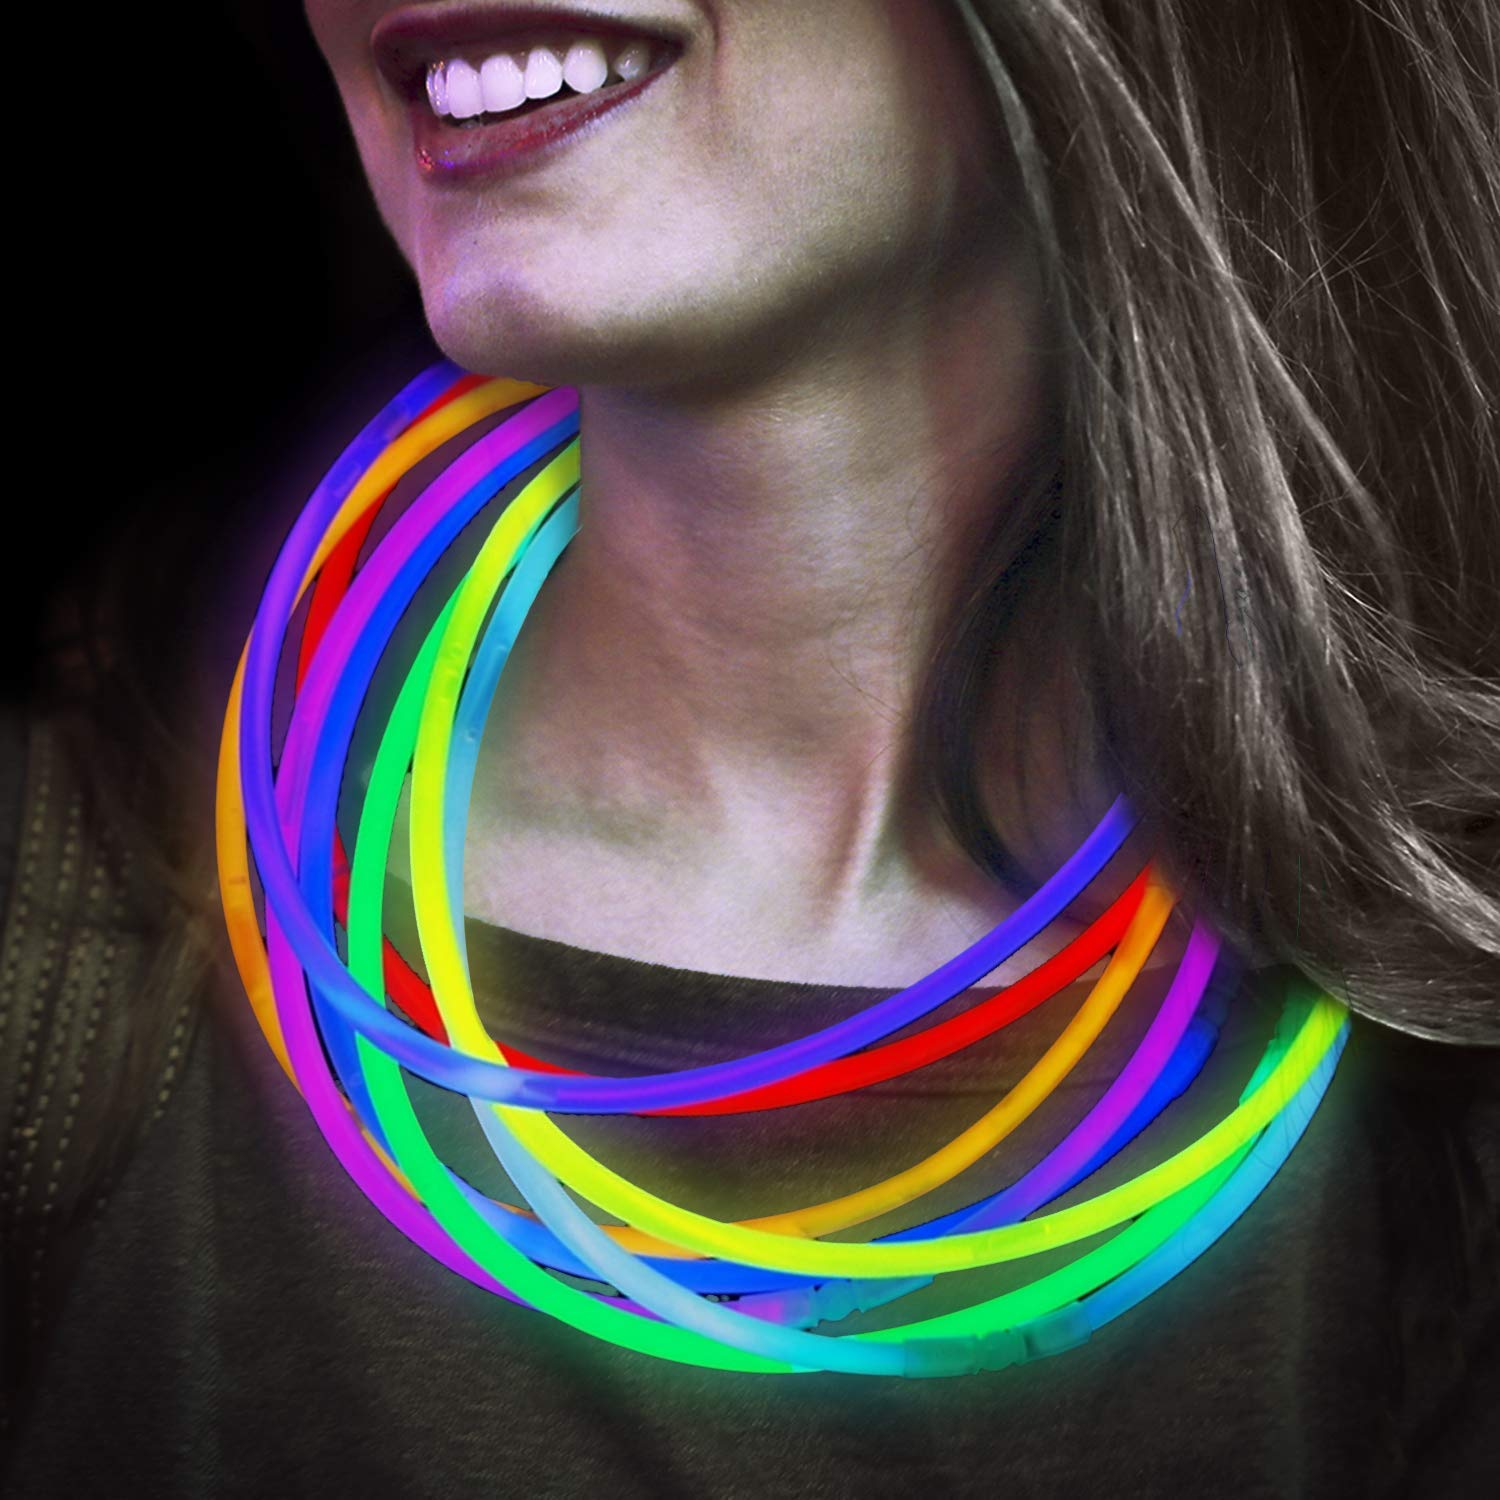 Lumistick Premium 22 Inch Glow Stick Necklaces with Connectors | Kid Safe Non-Toxic Glowstick Necklaces Party Pack | Available in Bulk and Color Varieties | Lasts 12 Hours (Color Assortment, 200)